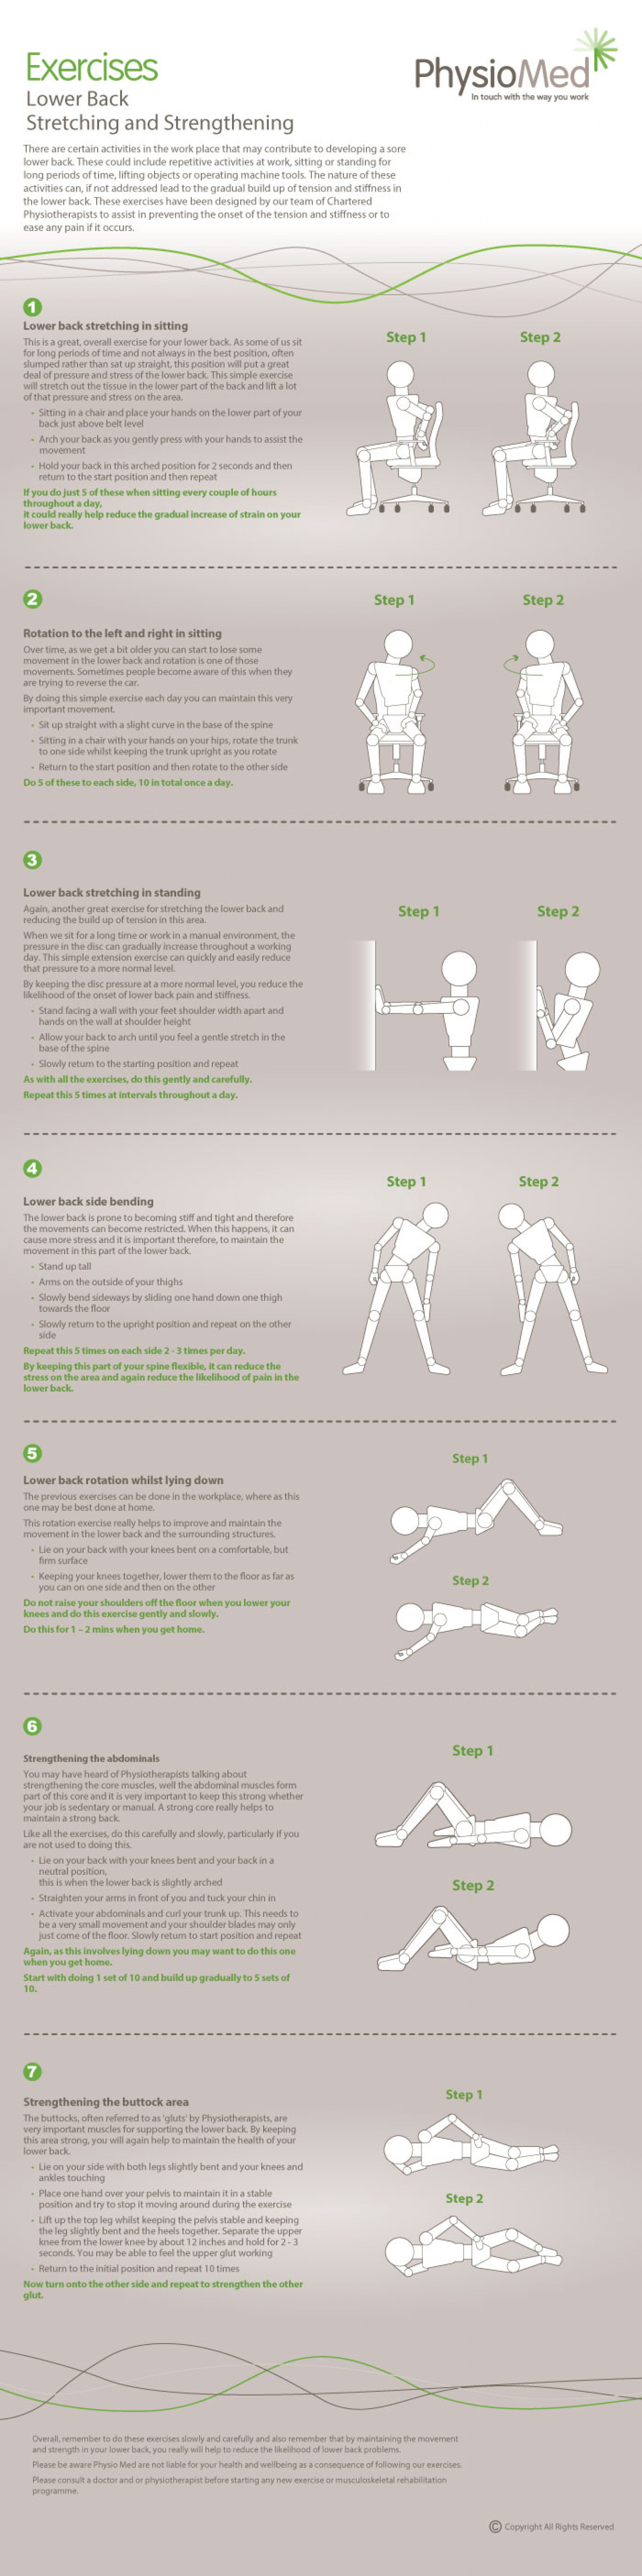 Lower Back Stretching and Strengthening Infographic